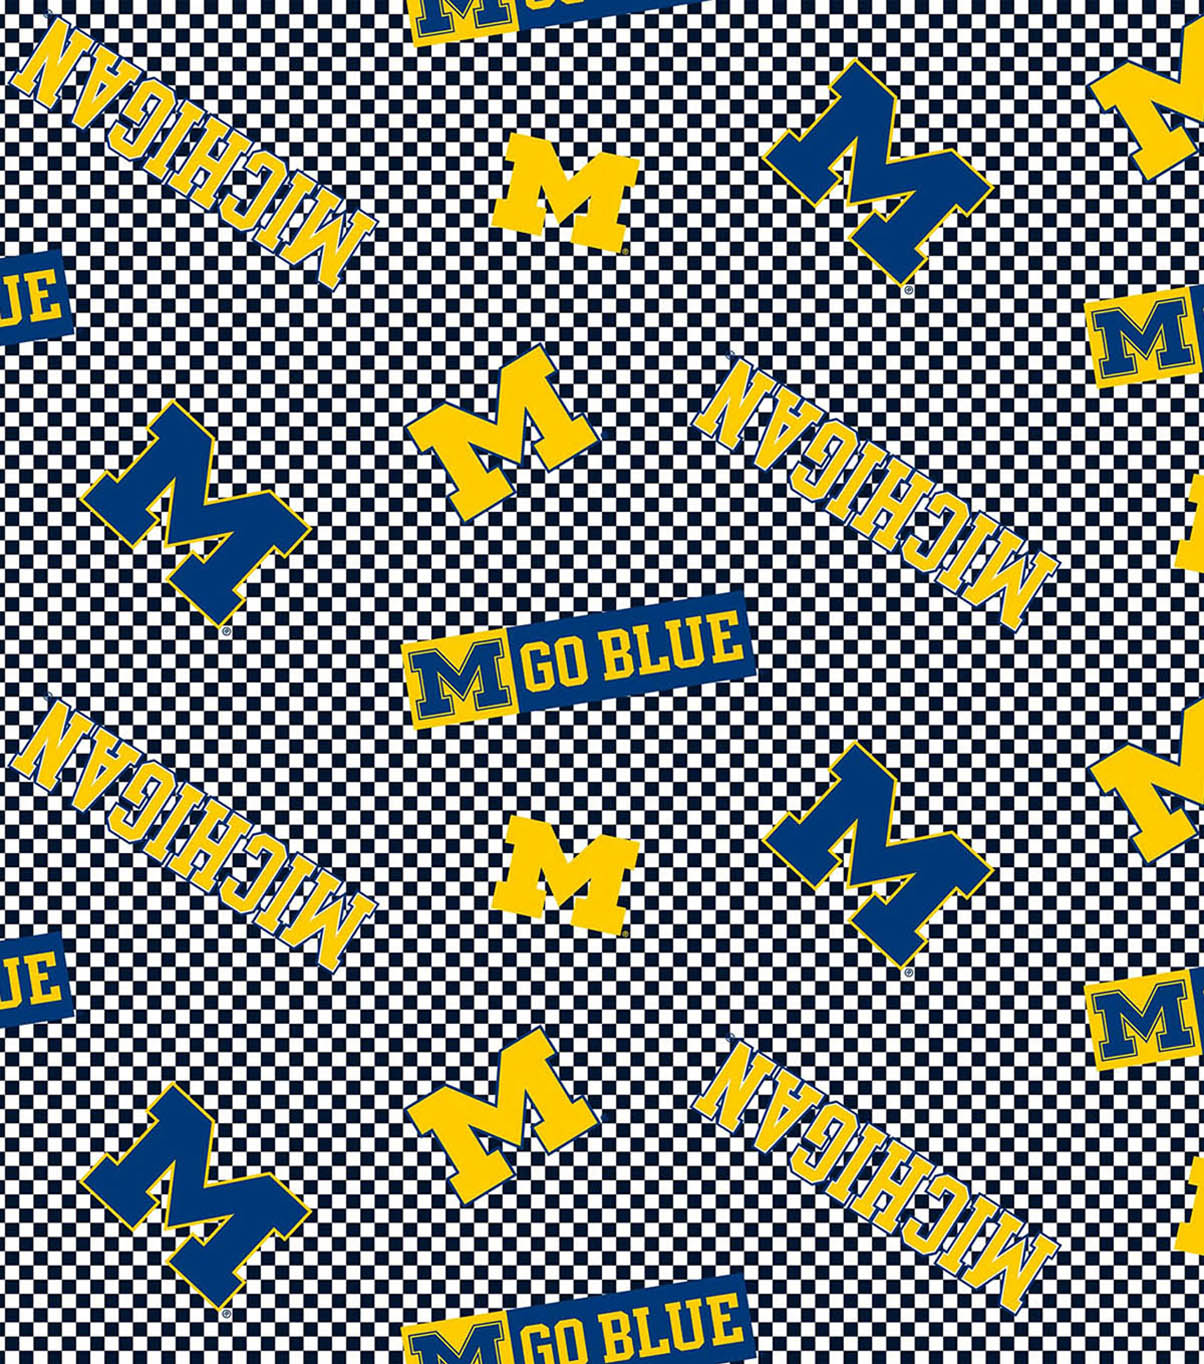 University of Michigan Wolverines Cotton Fabric -Tossed